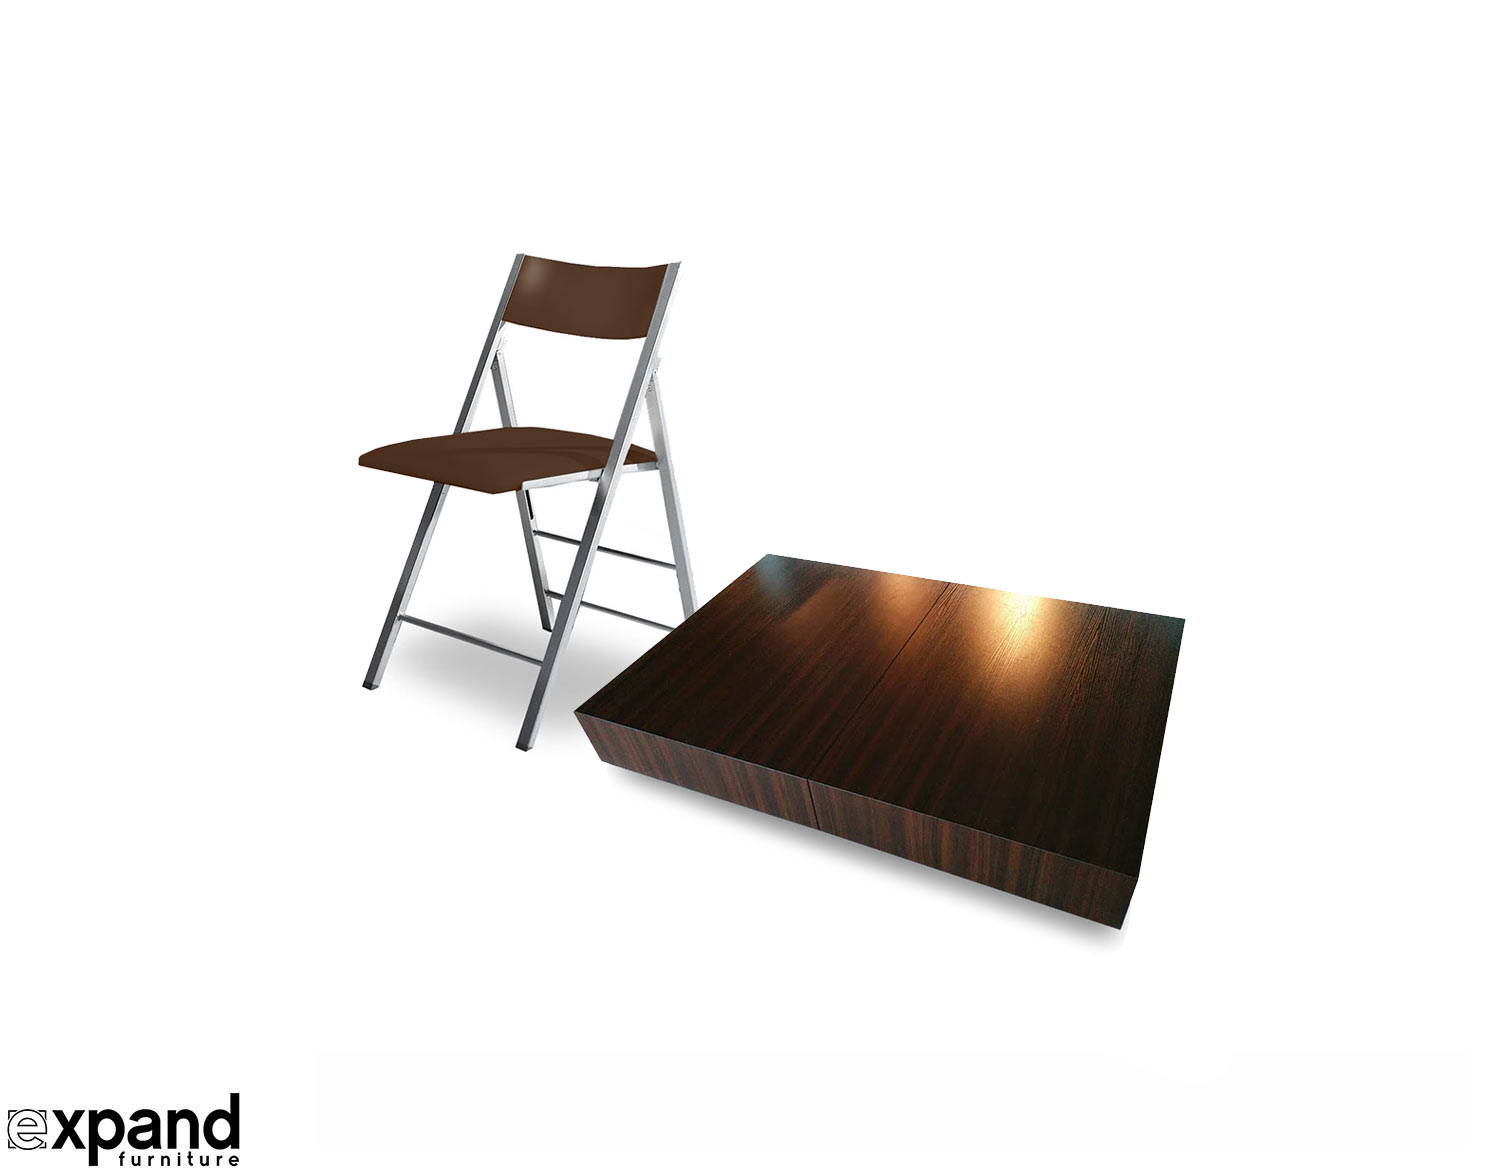 High Quality Expand Furniture Images